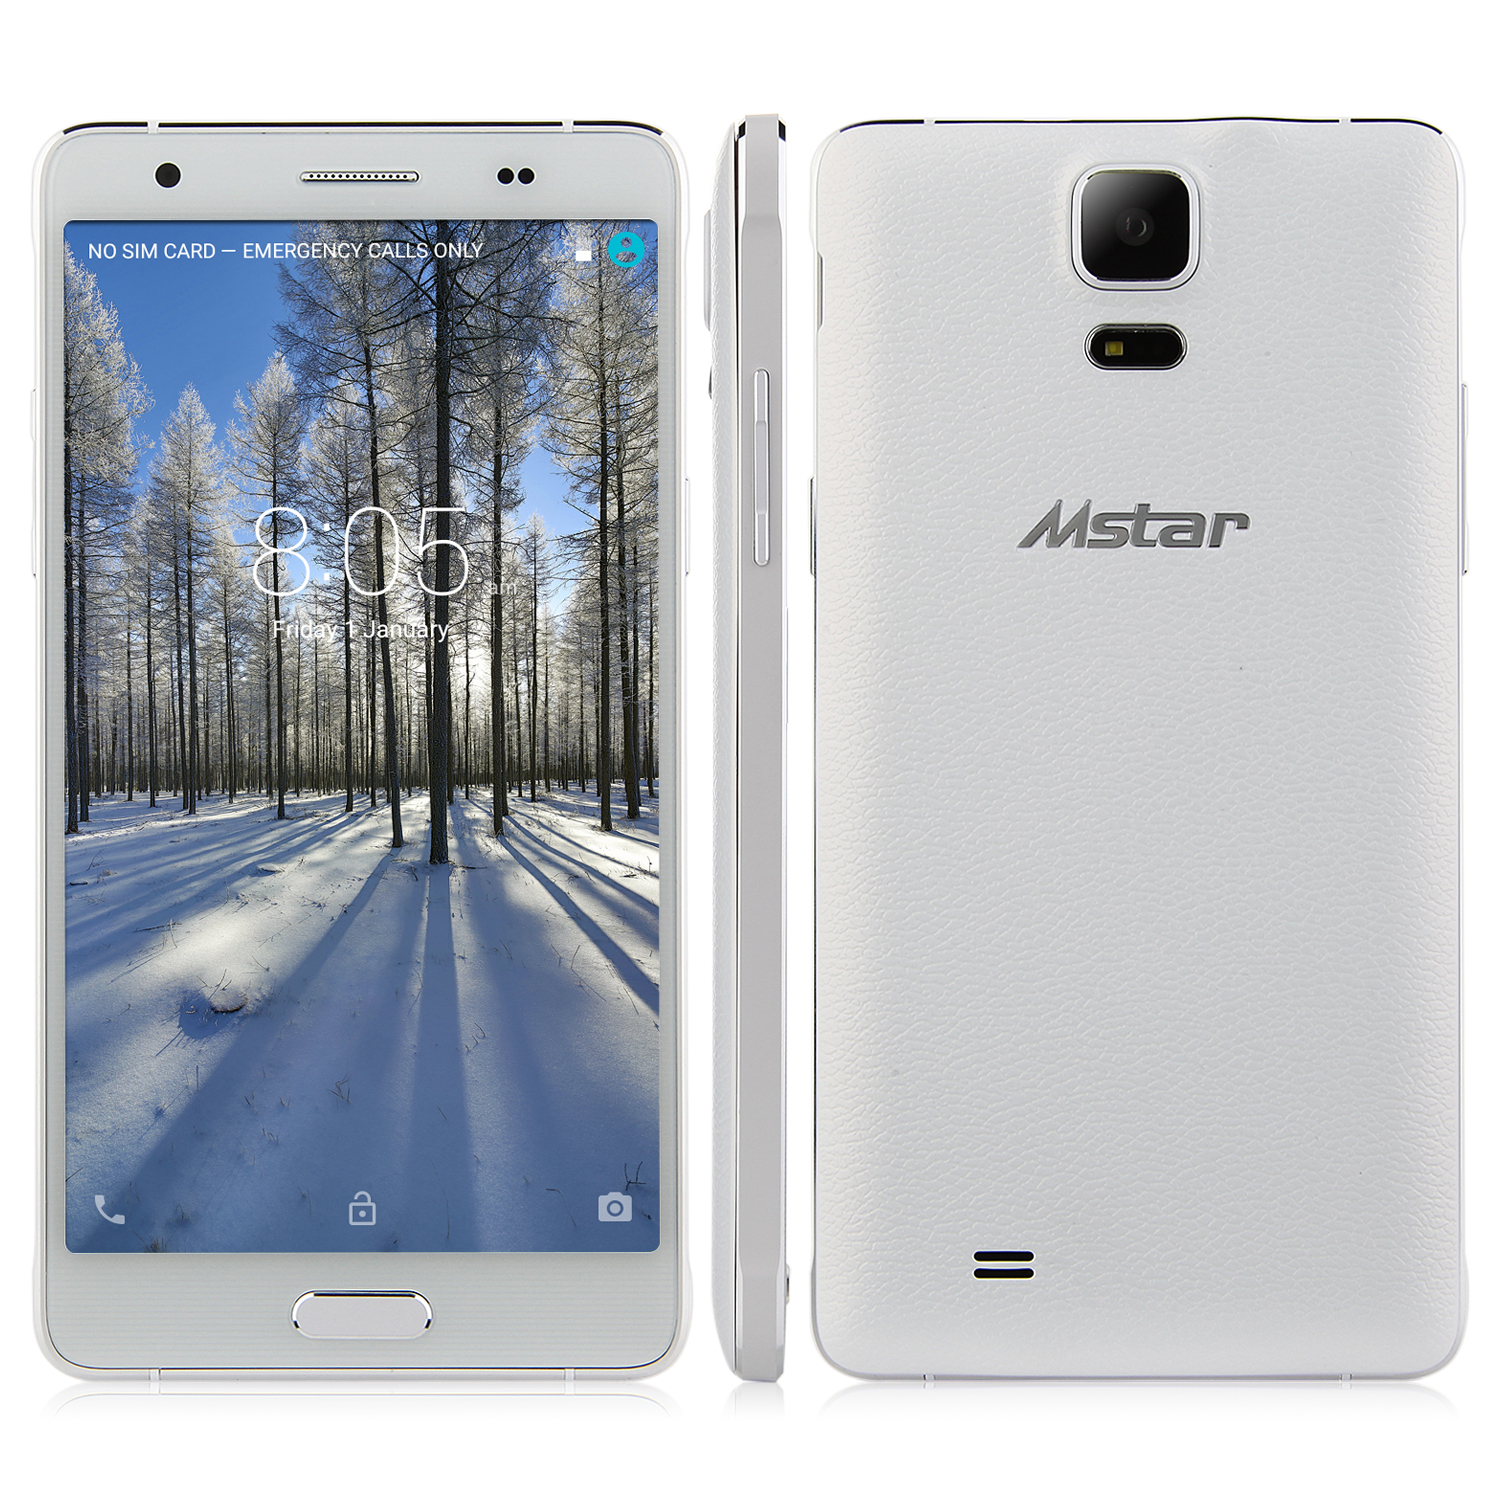 Mstar M1 4G Smartphone Android 5.0 MTK6752 Octa Core 1GB 16GB 5.5 Inch HD Screen White